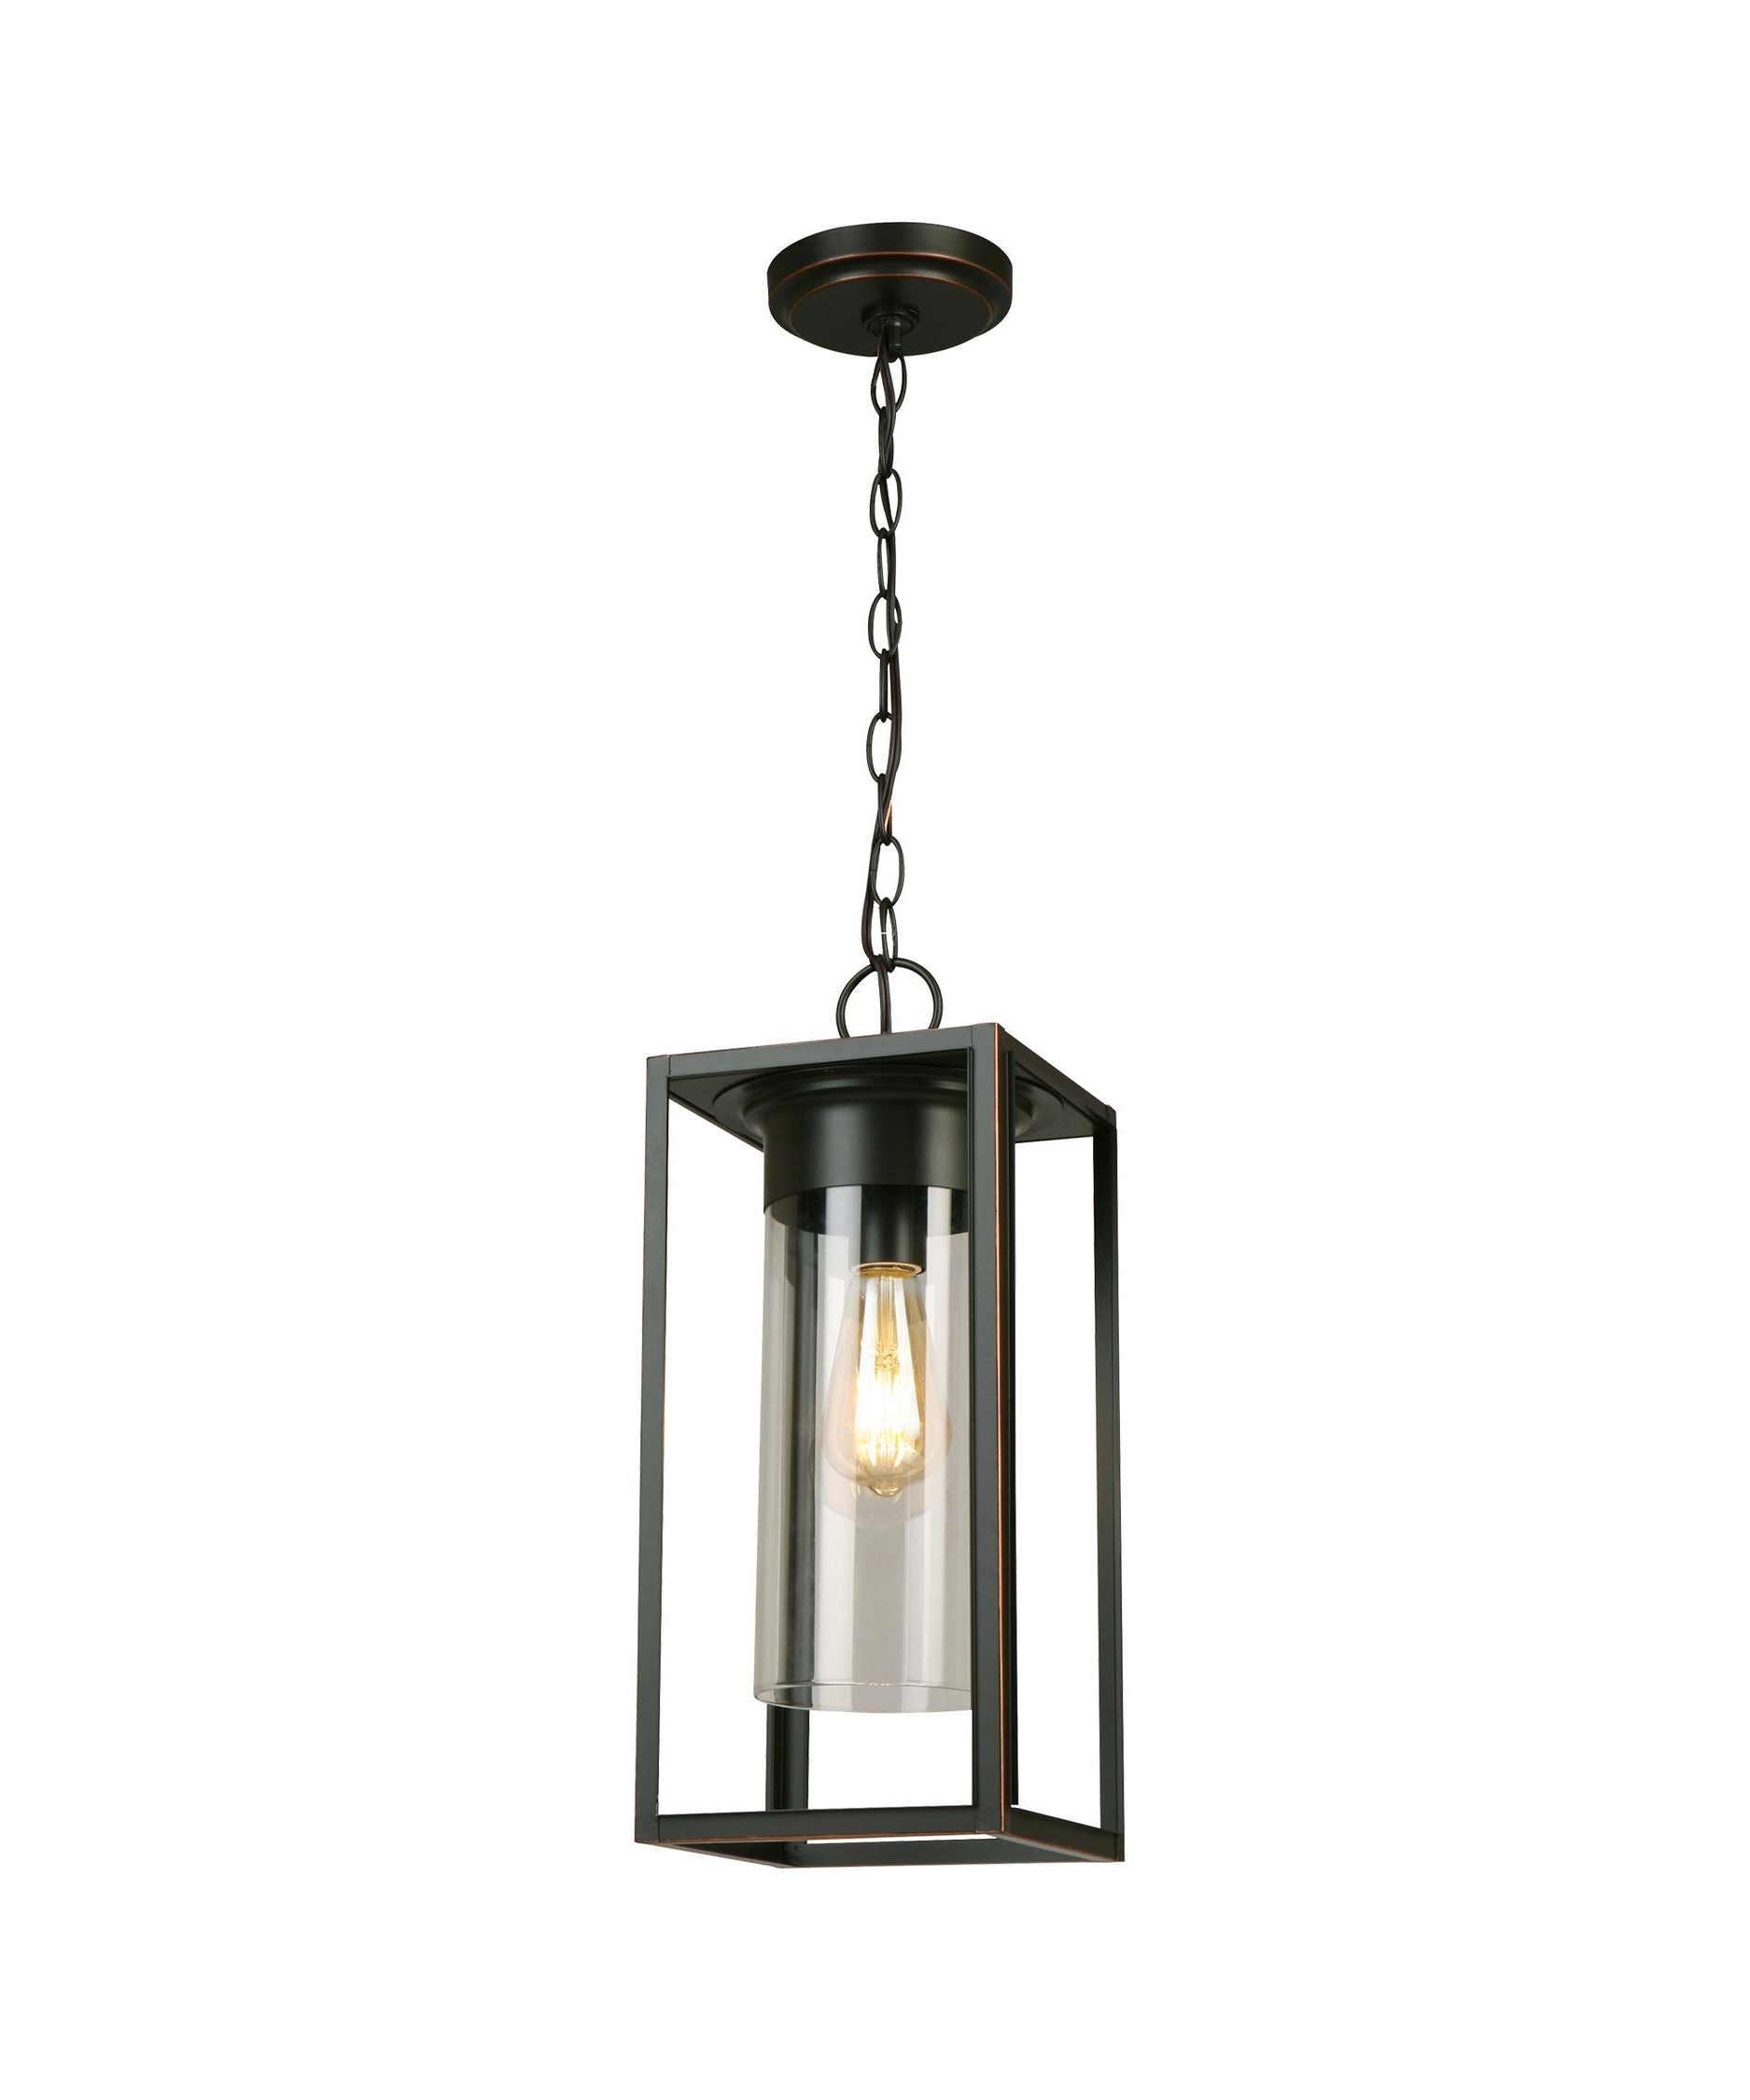 Favorite Walker Hill 7 1 Light Outdoor Outdoor Hanging Lantern In Oil Rubbed Intended For Outdoor Hanging Oil Lanterns (View 11 of 20)